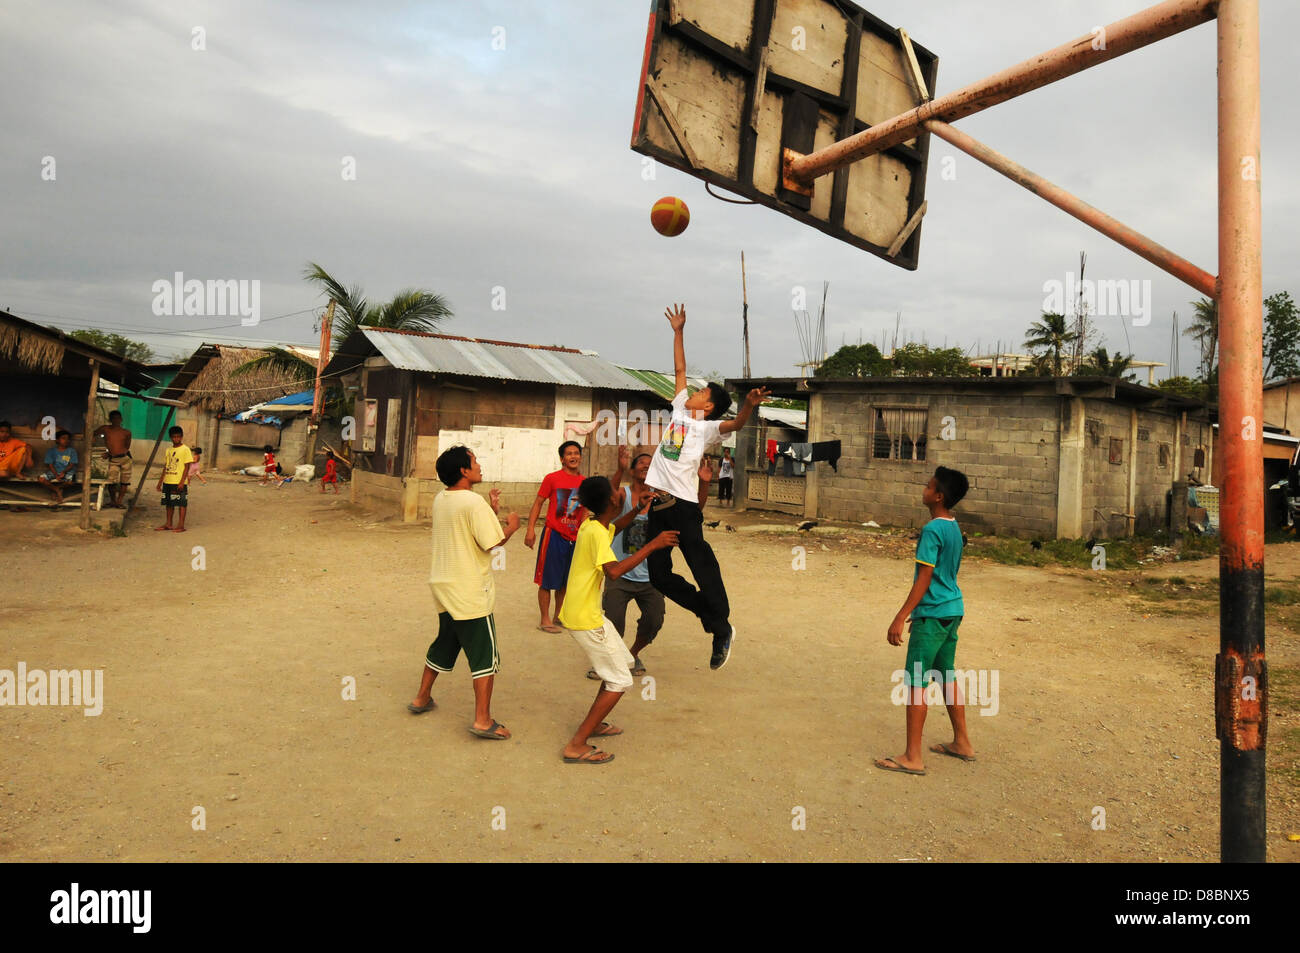 filipino men play basketball at the backyard near a mosque in the